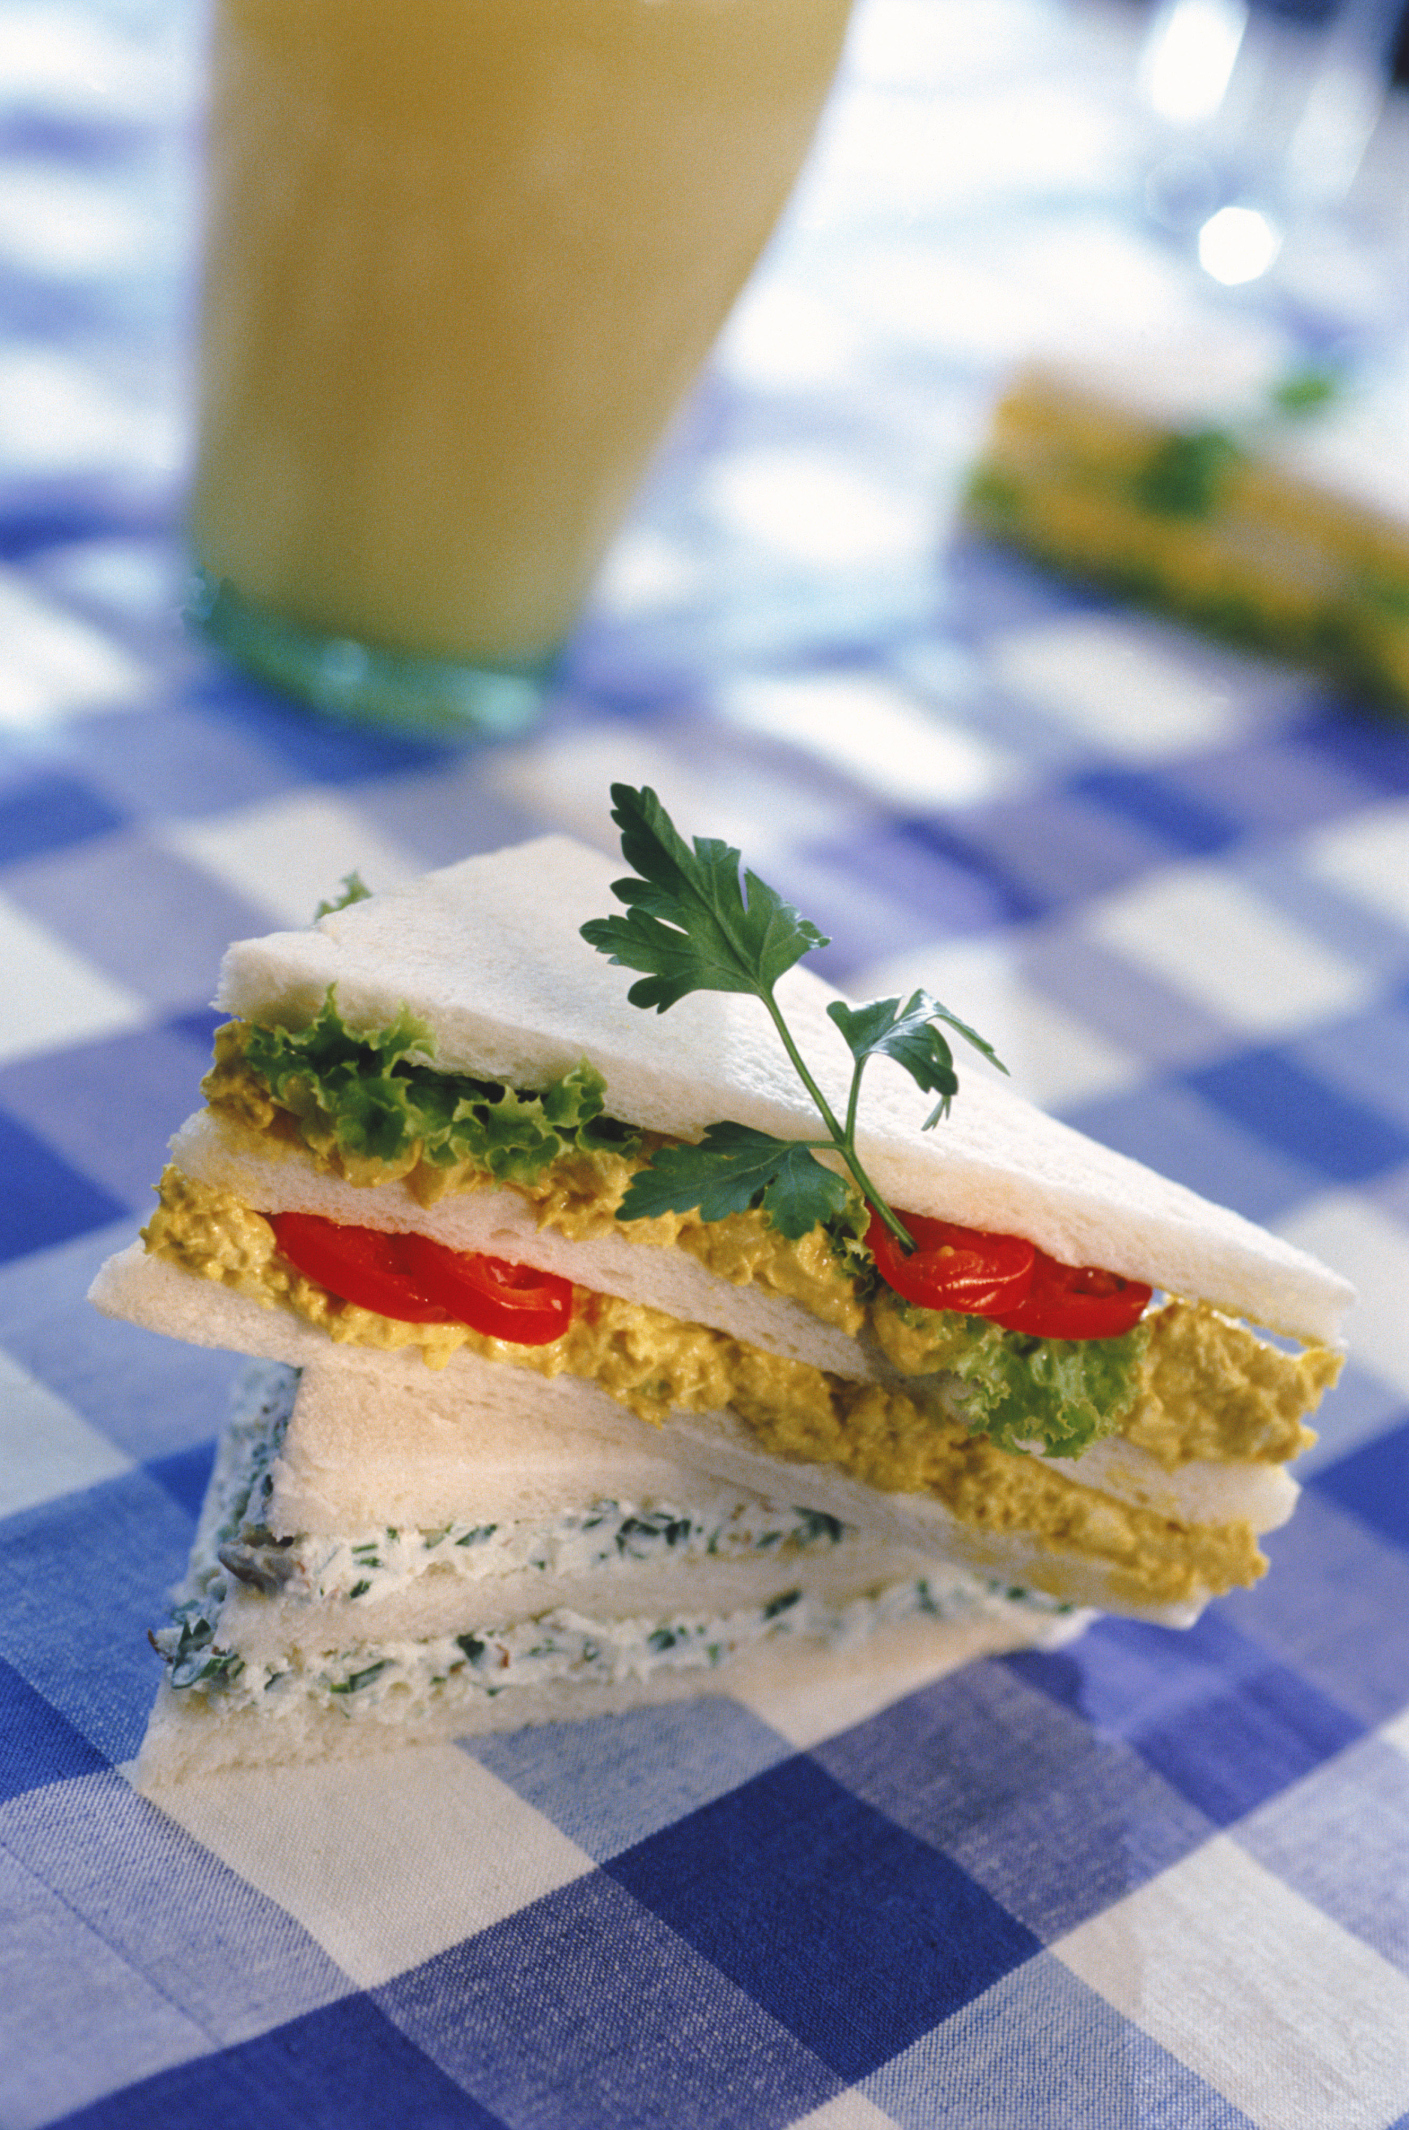 Egg salad can be tailored to your taste.